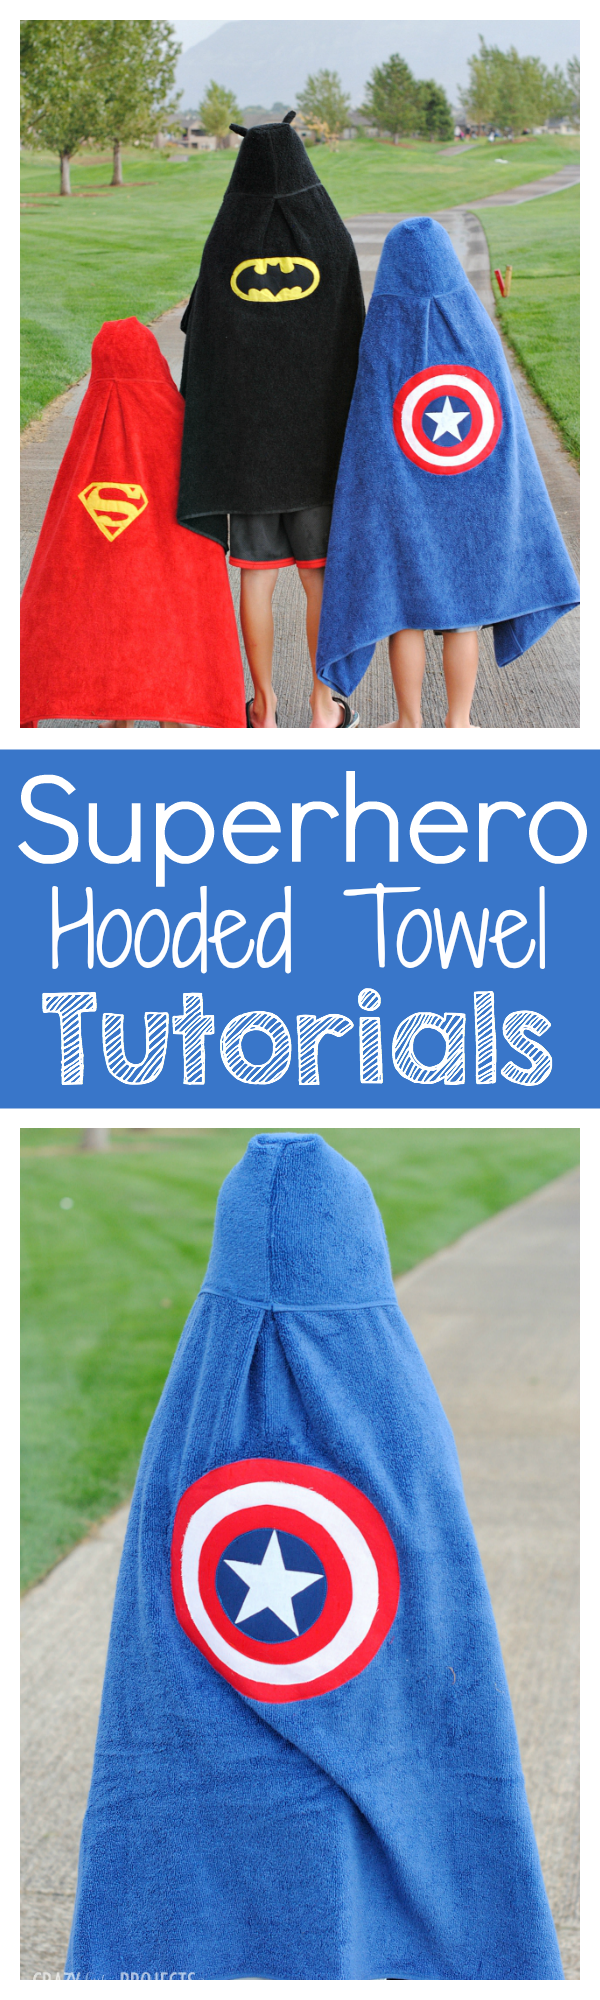 Superhero Hooded Towel Patterns